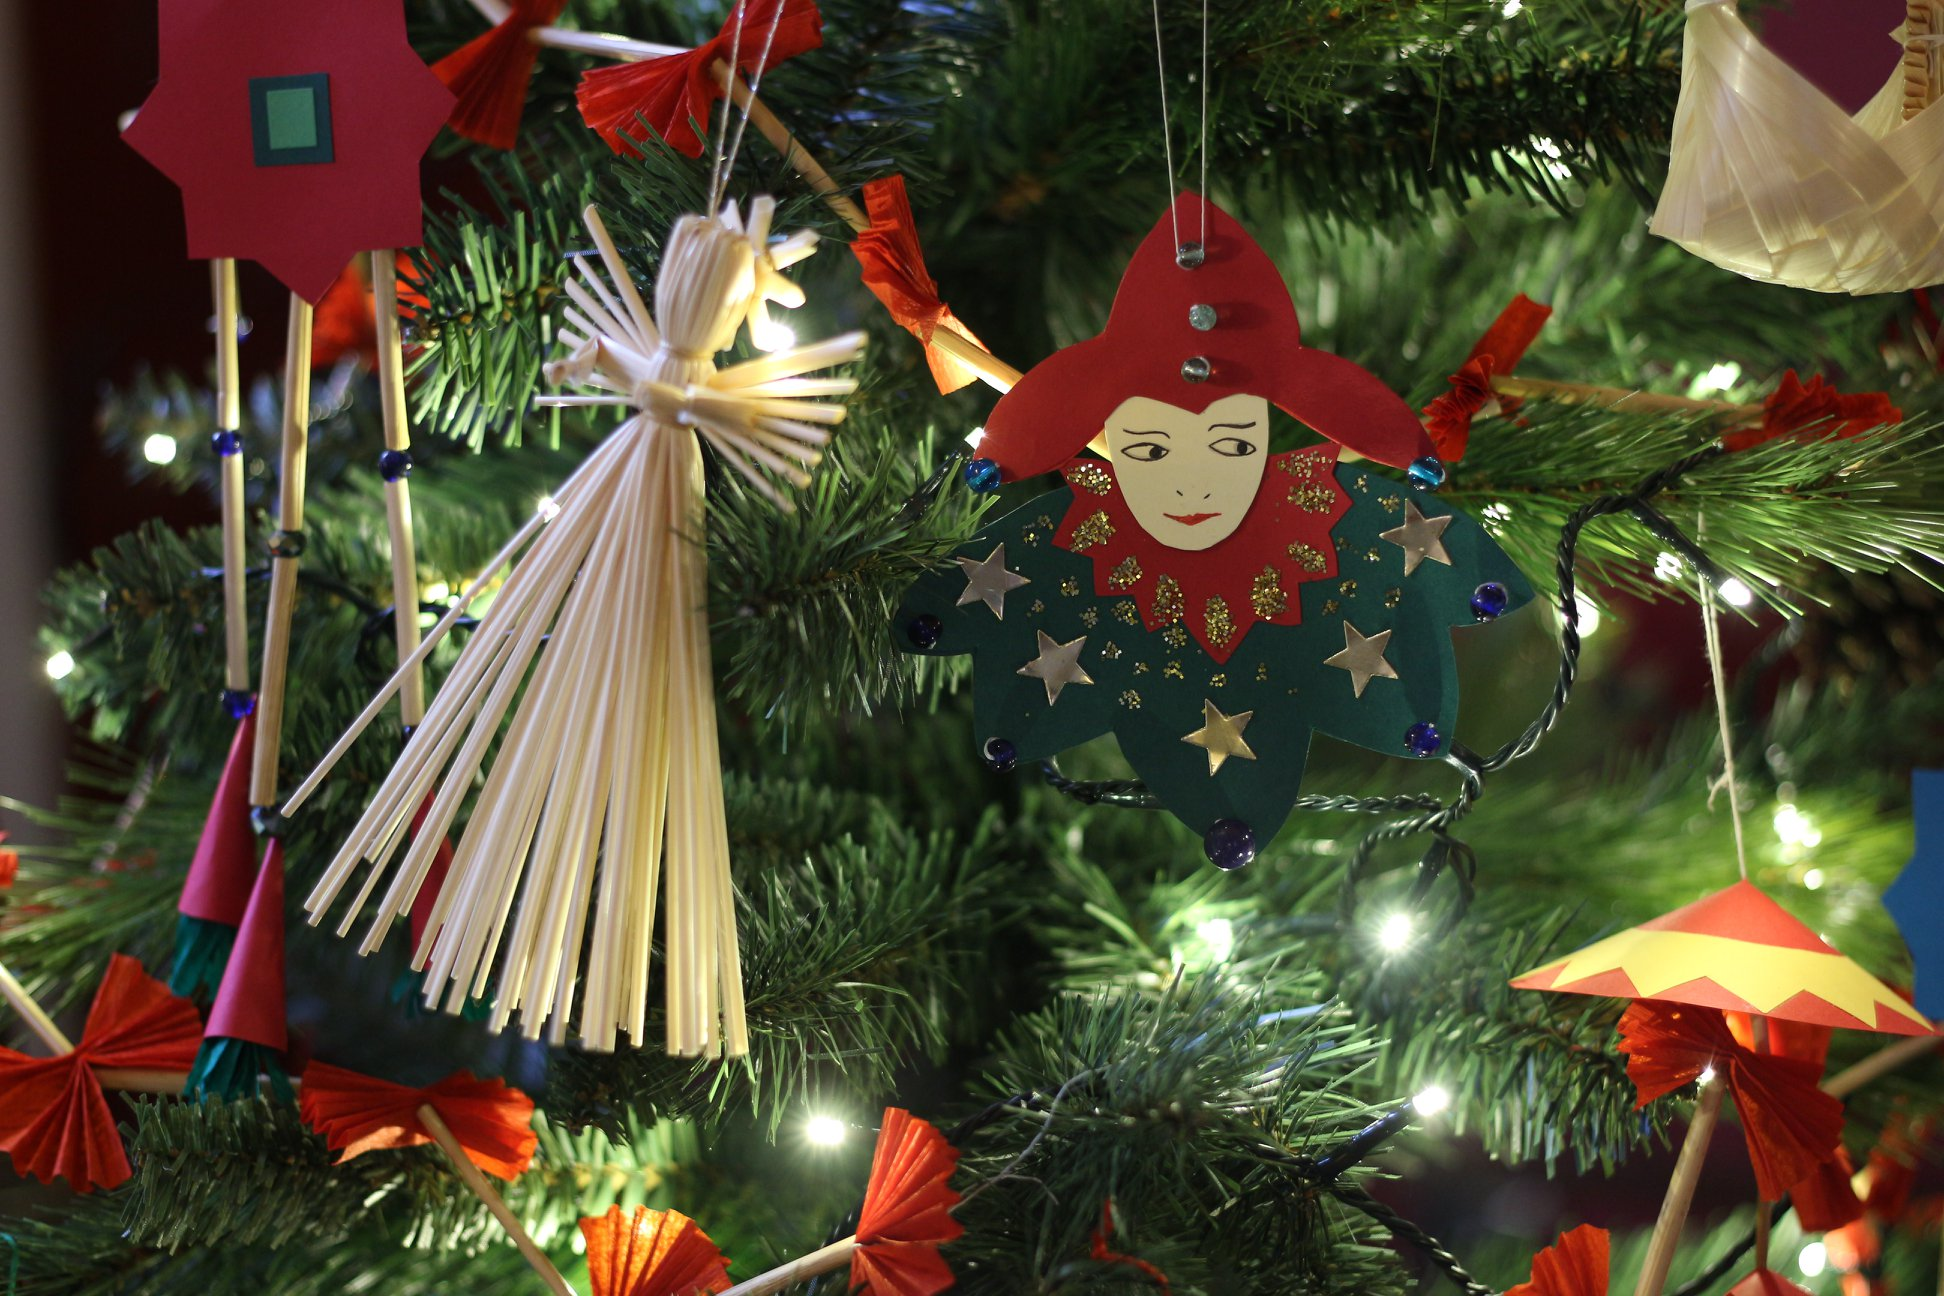 Christmas 'Around the World' at Bassetlaw Museum